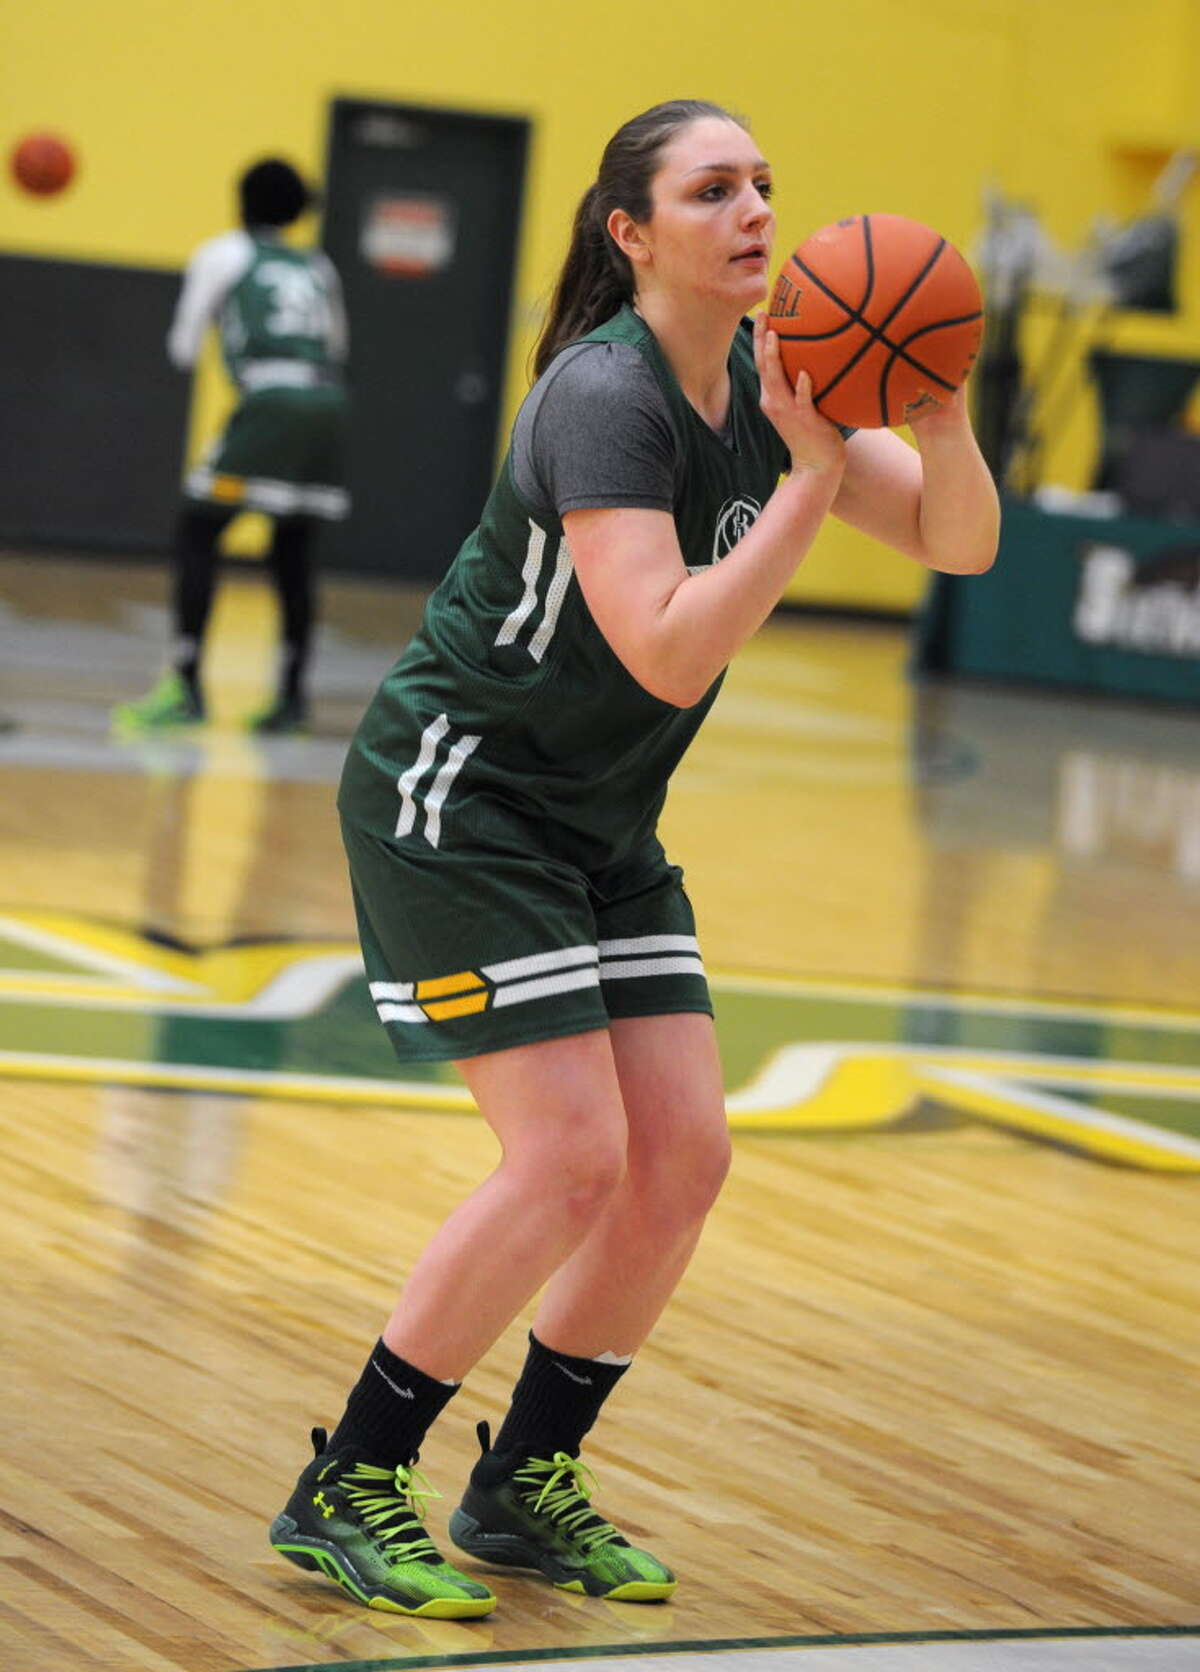 Siena senior forward Margot Hetzke shown in practice in November 2015, a month before suffering a career-altering concussion against UAlbany. (Lori Van Buren/Times Union)